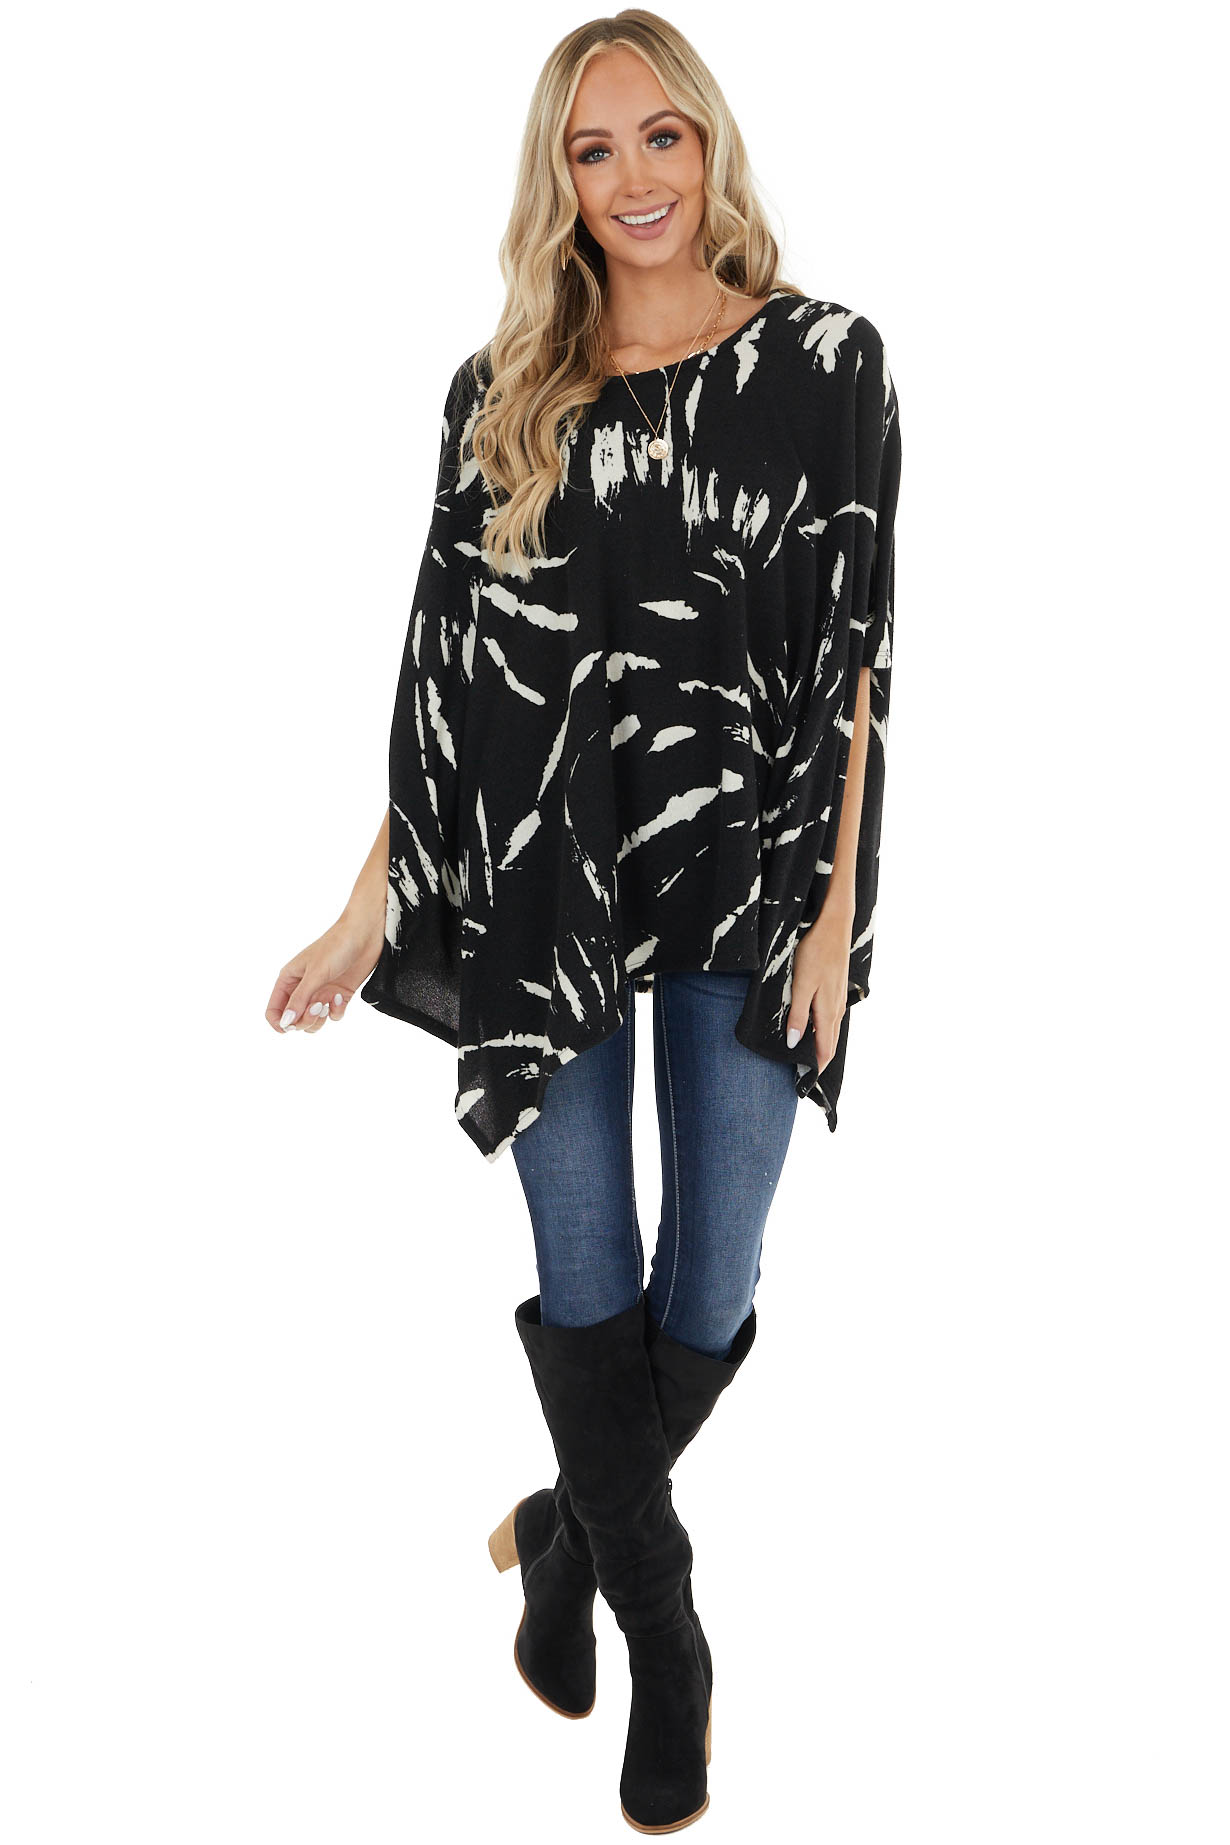 Black and Ivory Tie Dye Print Knit Poncho with Side Slits